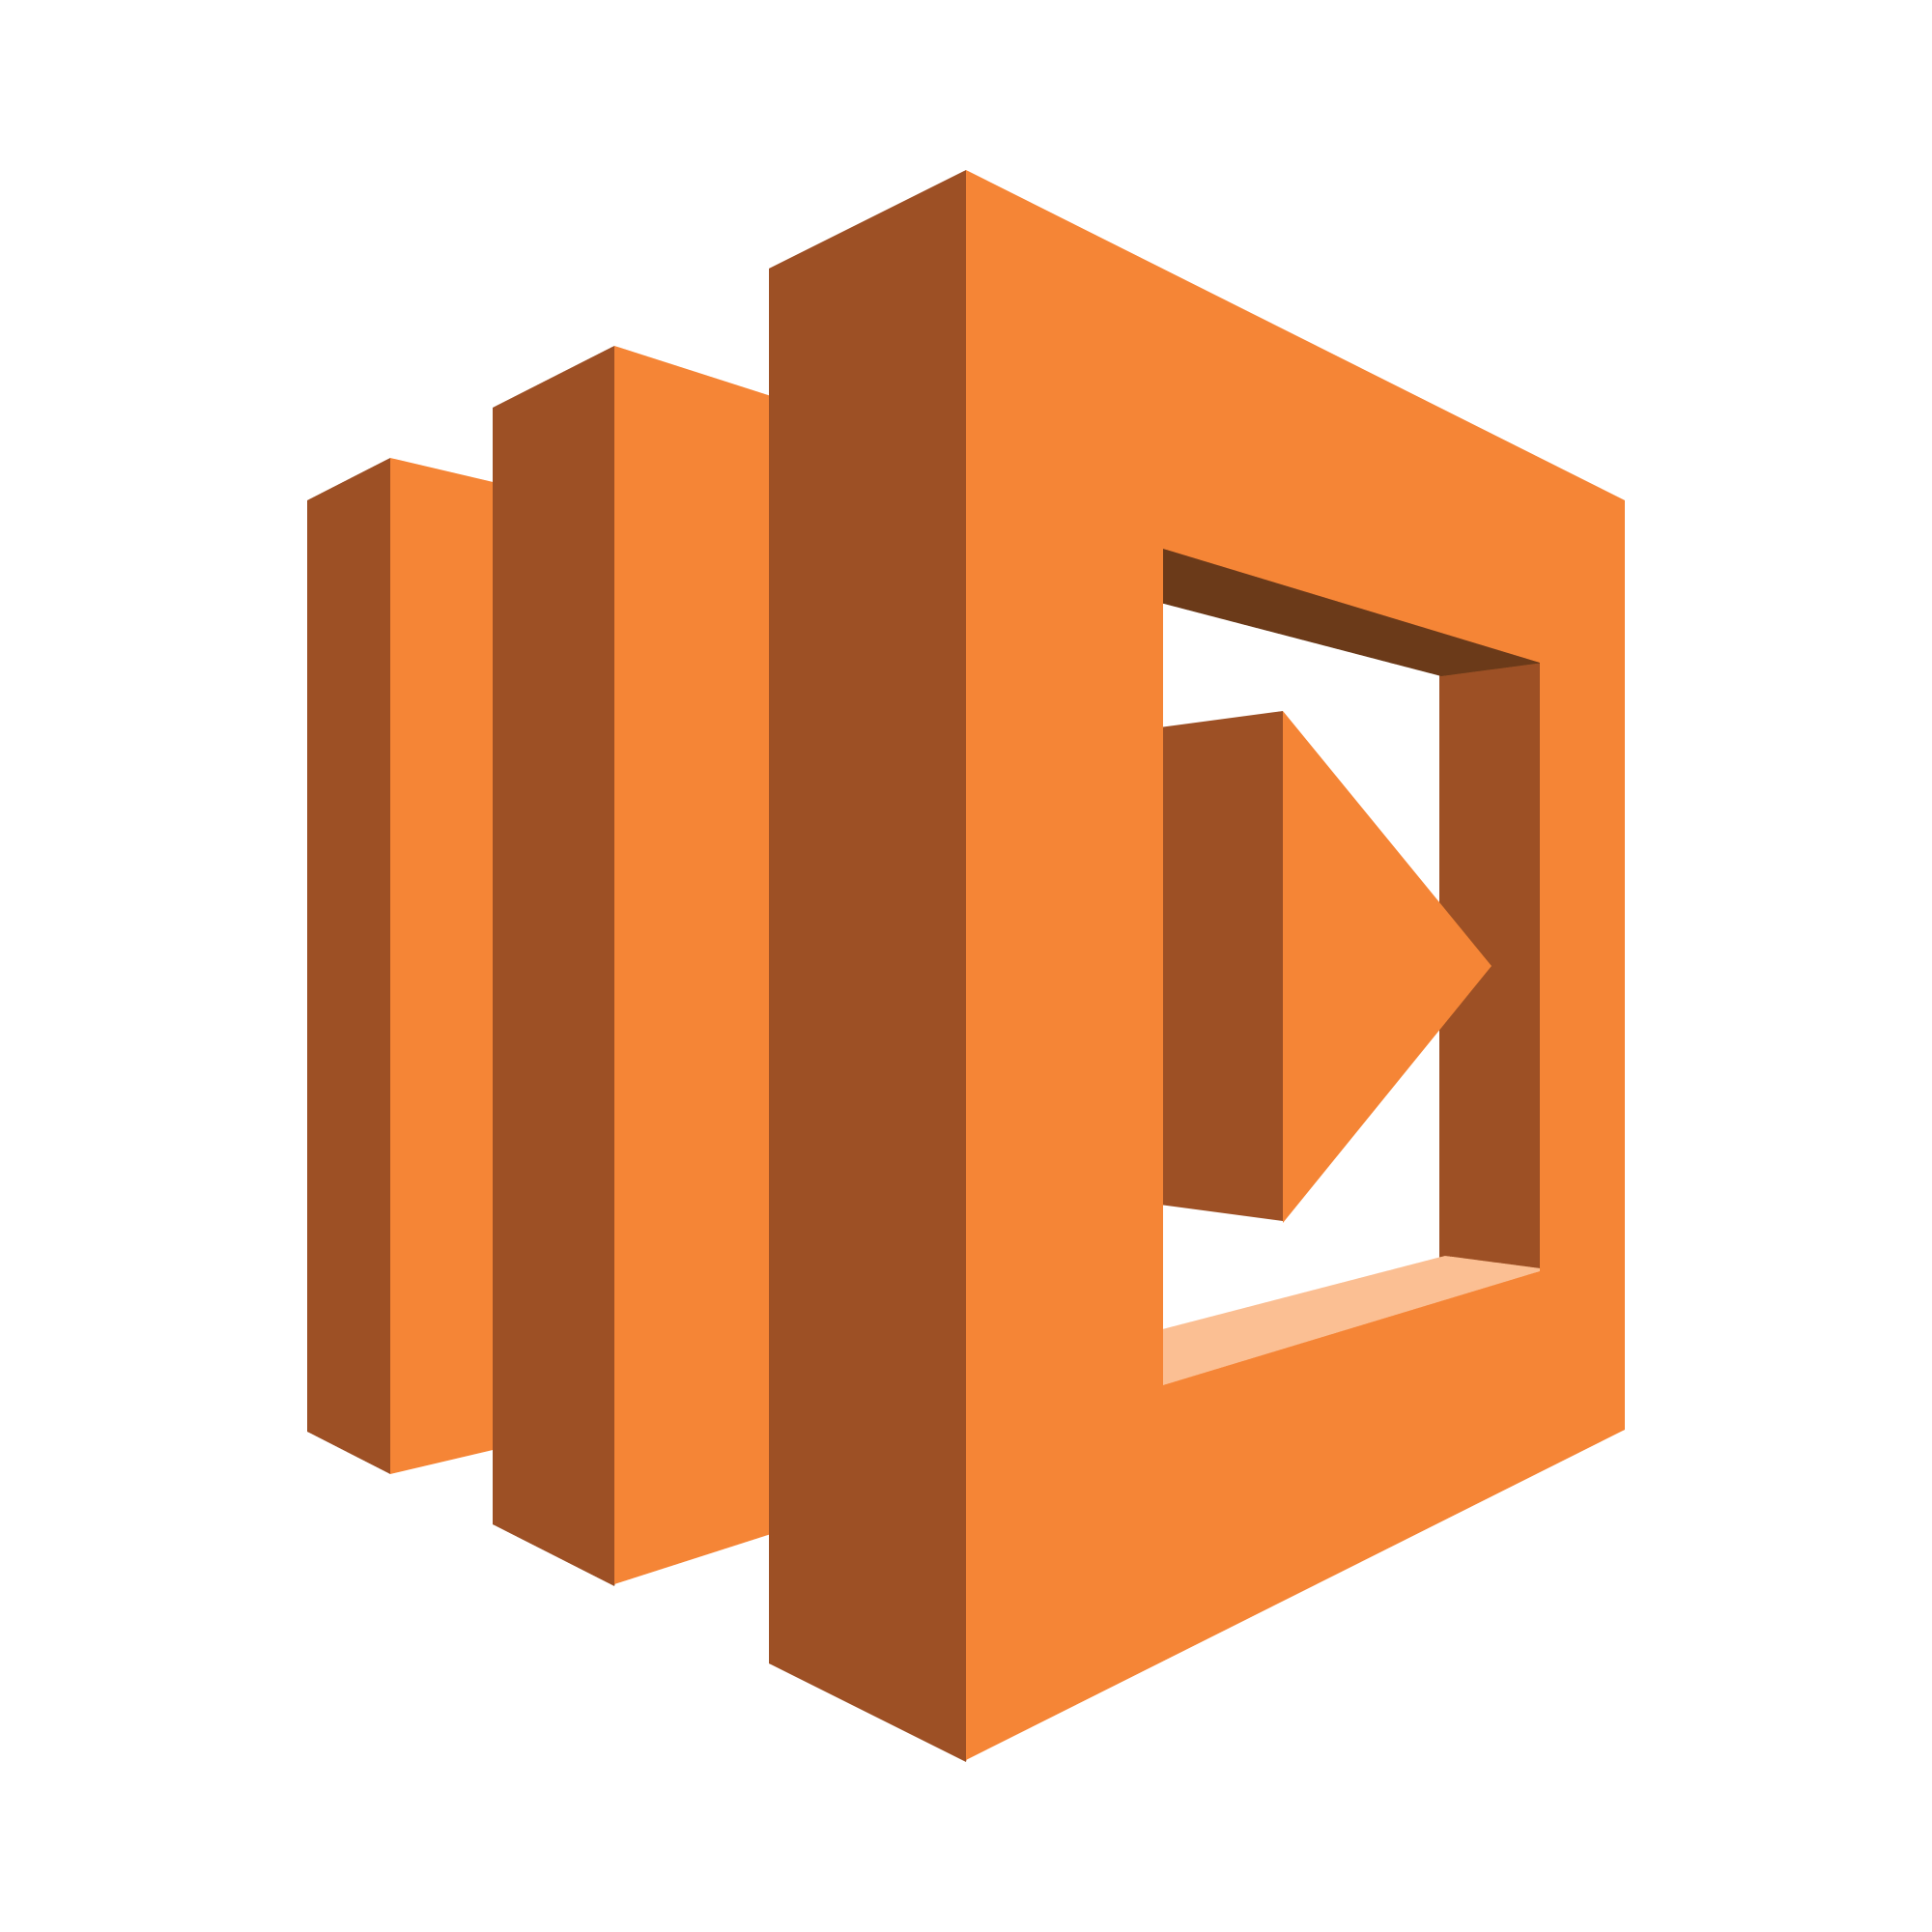 Lambda - AWS Pricing - Edureka